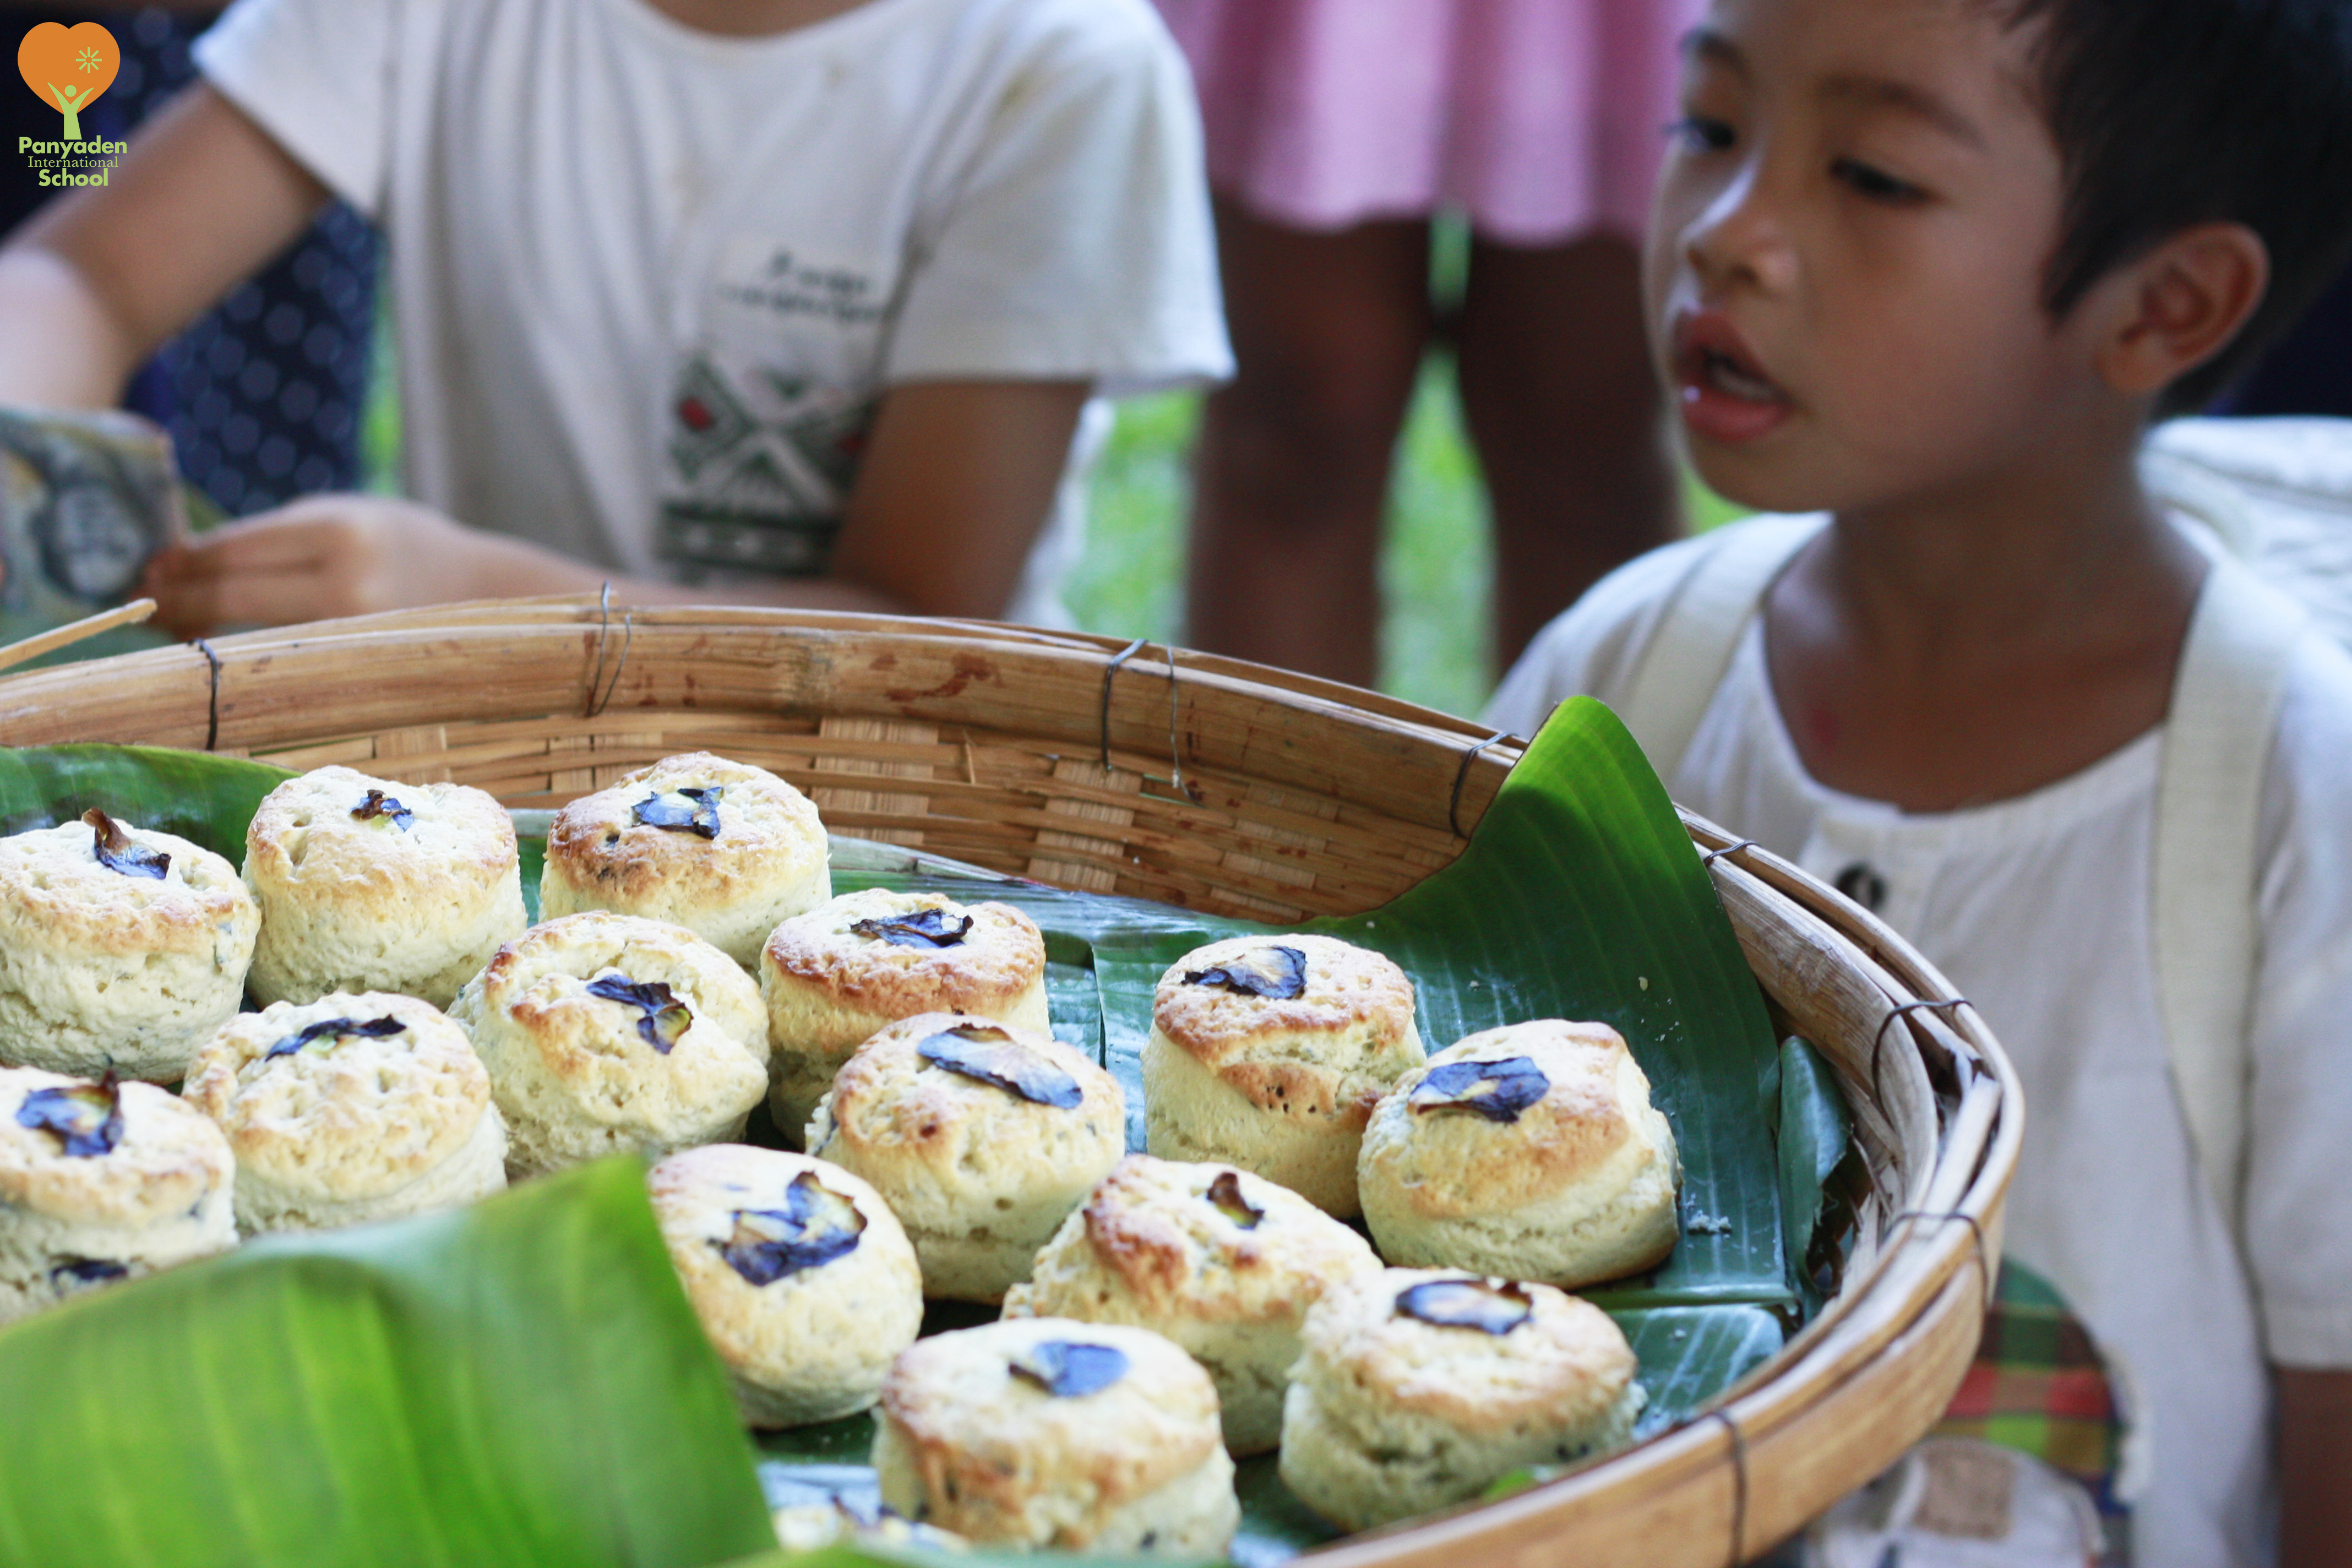 Butterfly pea scones made by Panyaden Year 2 to 4 students for school 'My Project'